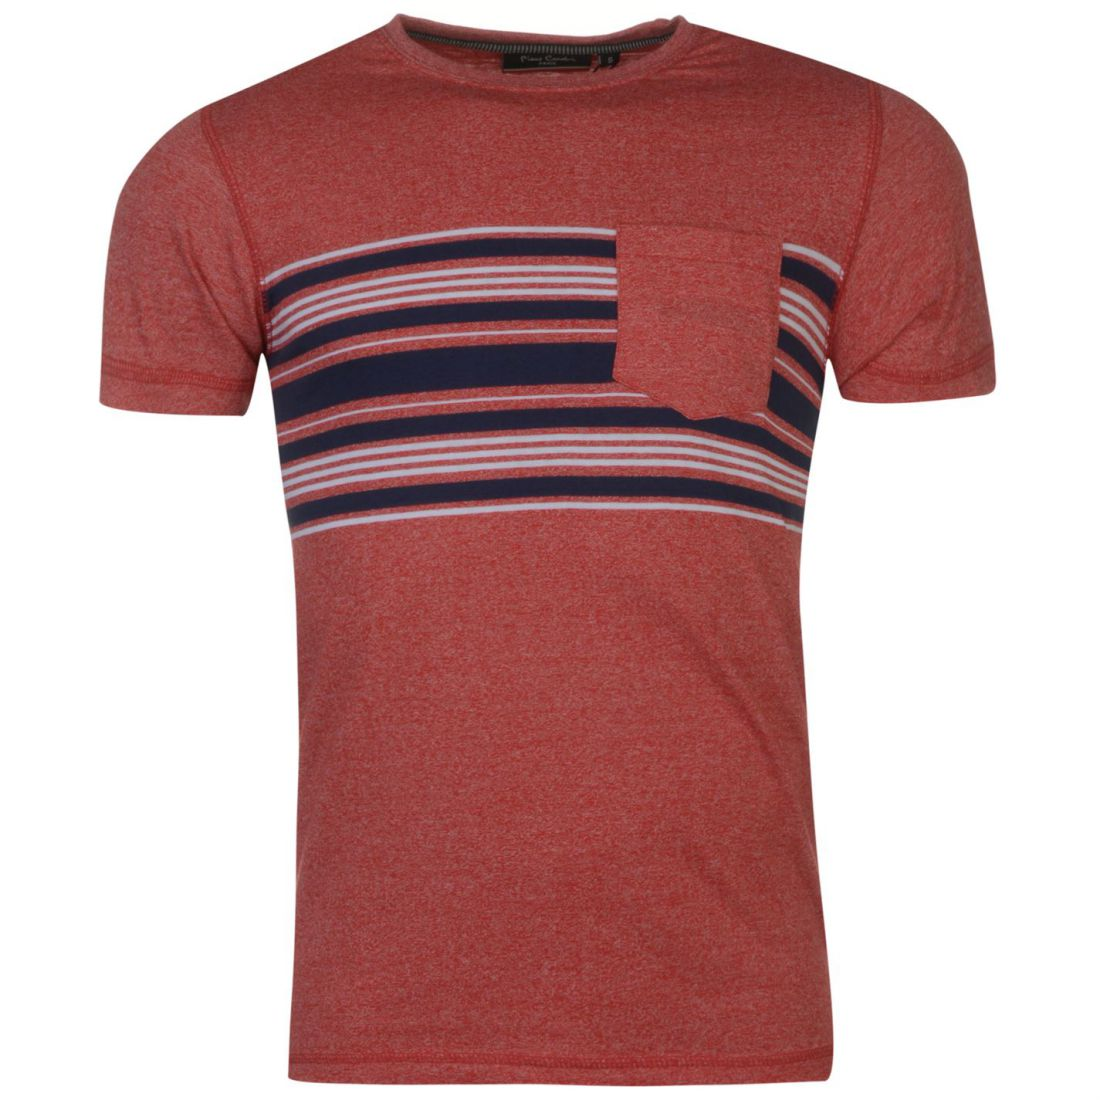 Pierre Cardin Mens Striped Pocket T Shirt Crew Neck Tee Top Short ... 51dfdca9f